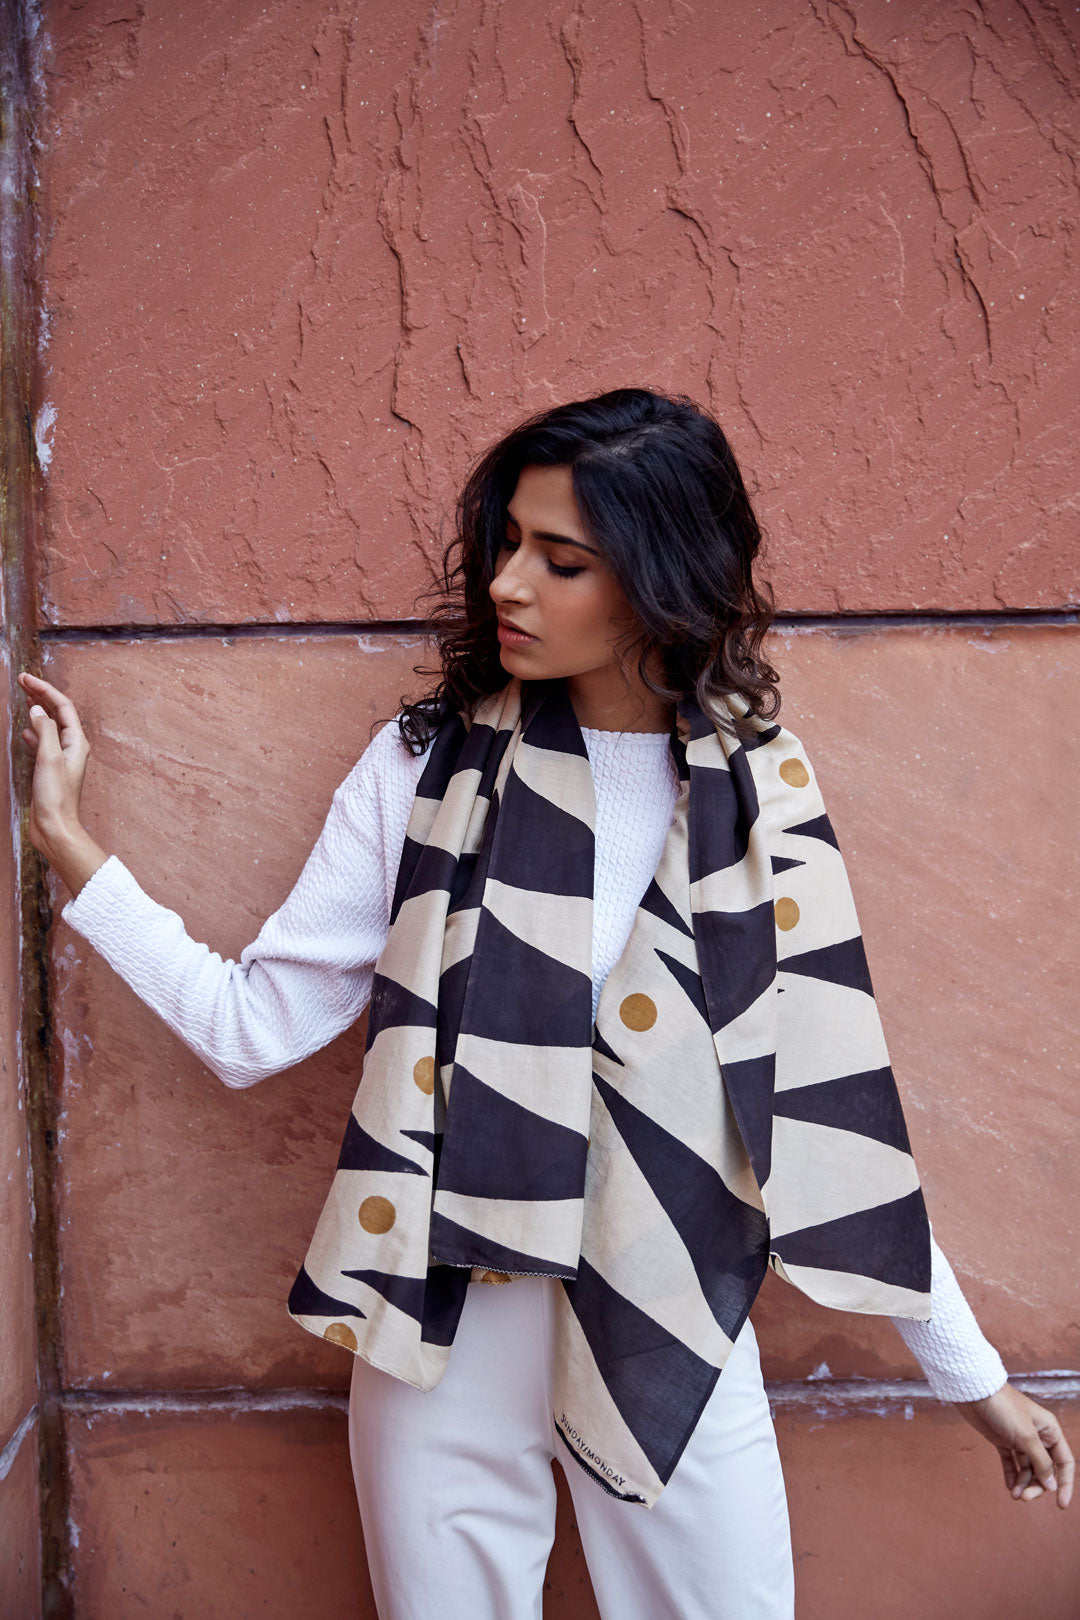 Hand block printed cotton silk scarf with a bold geometric print in black and ochre. Hand block printed with natural dyes on cotton silk.